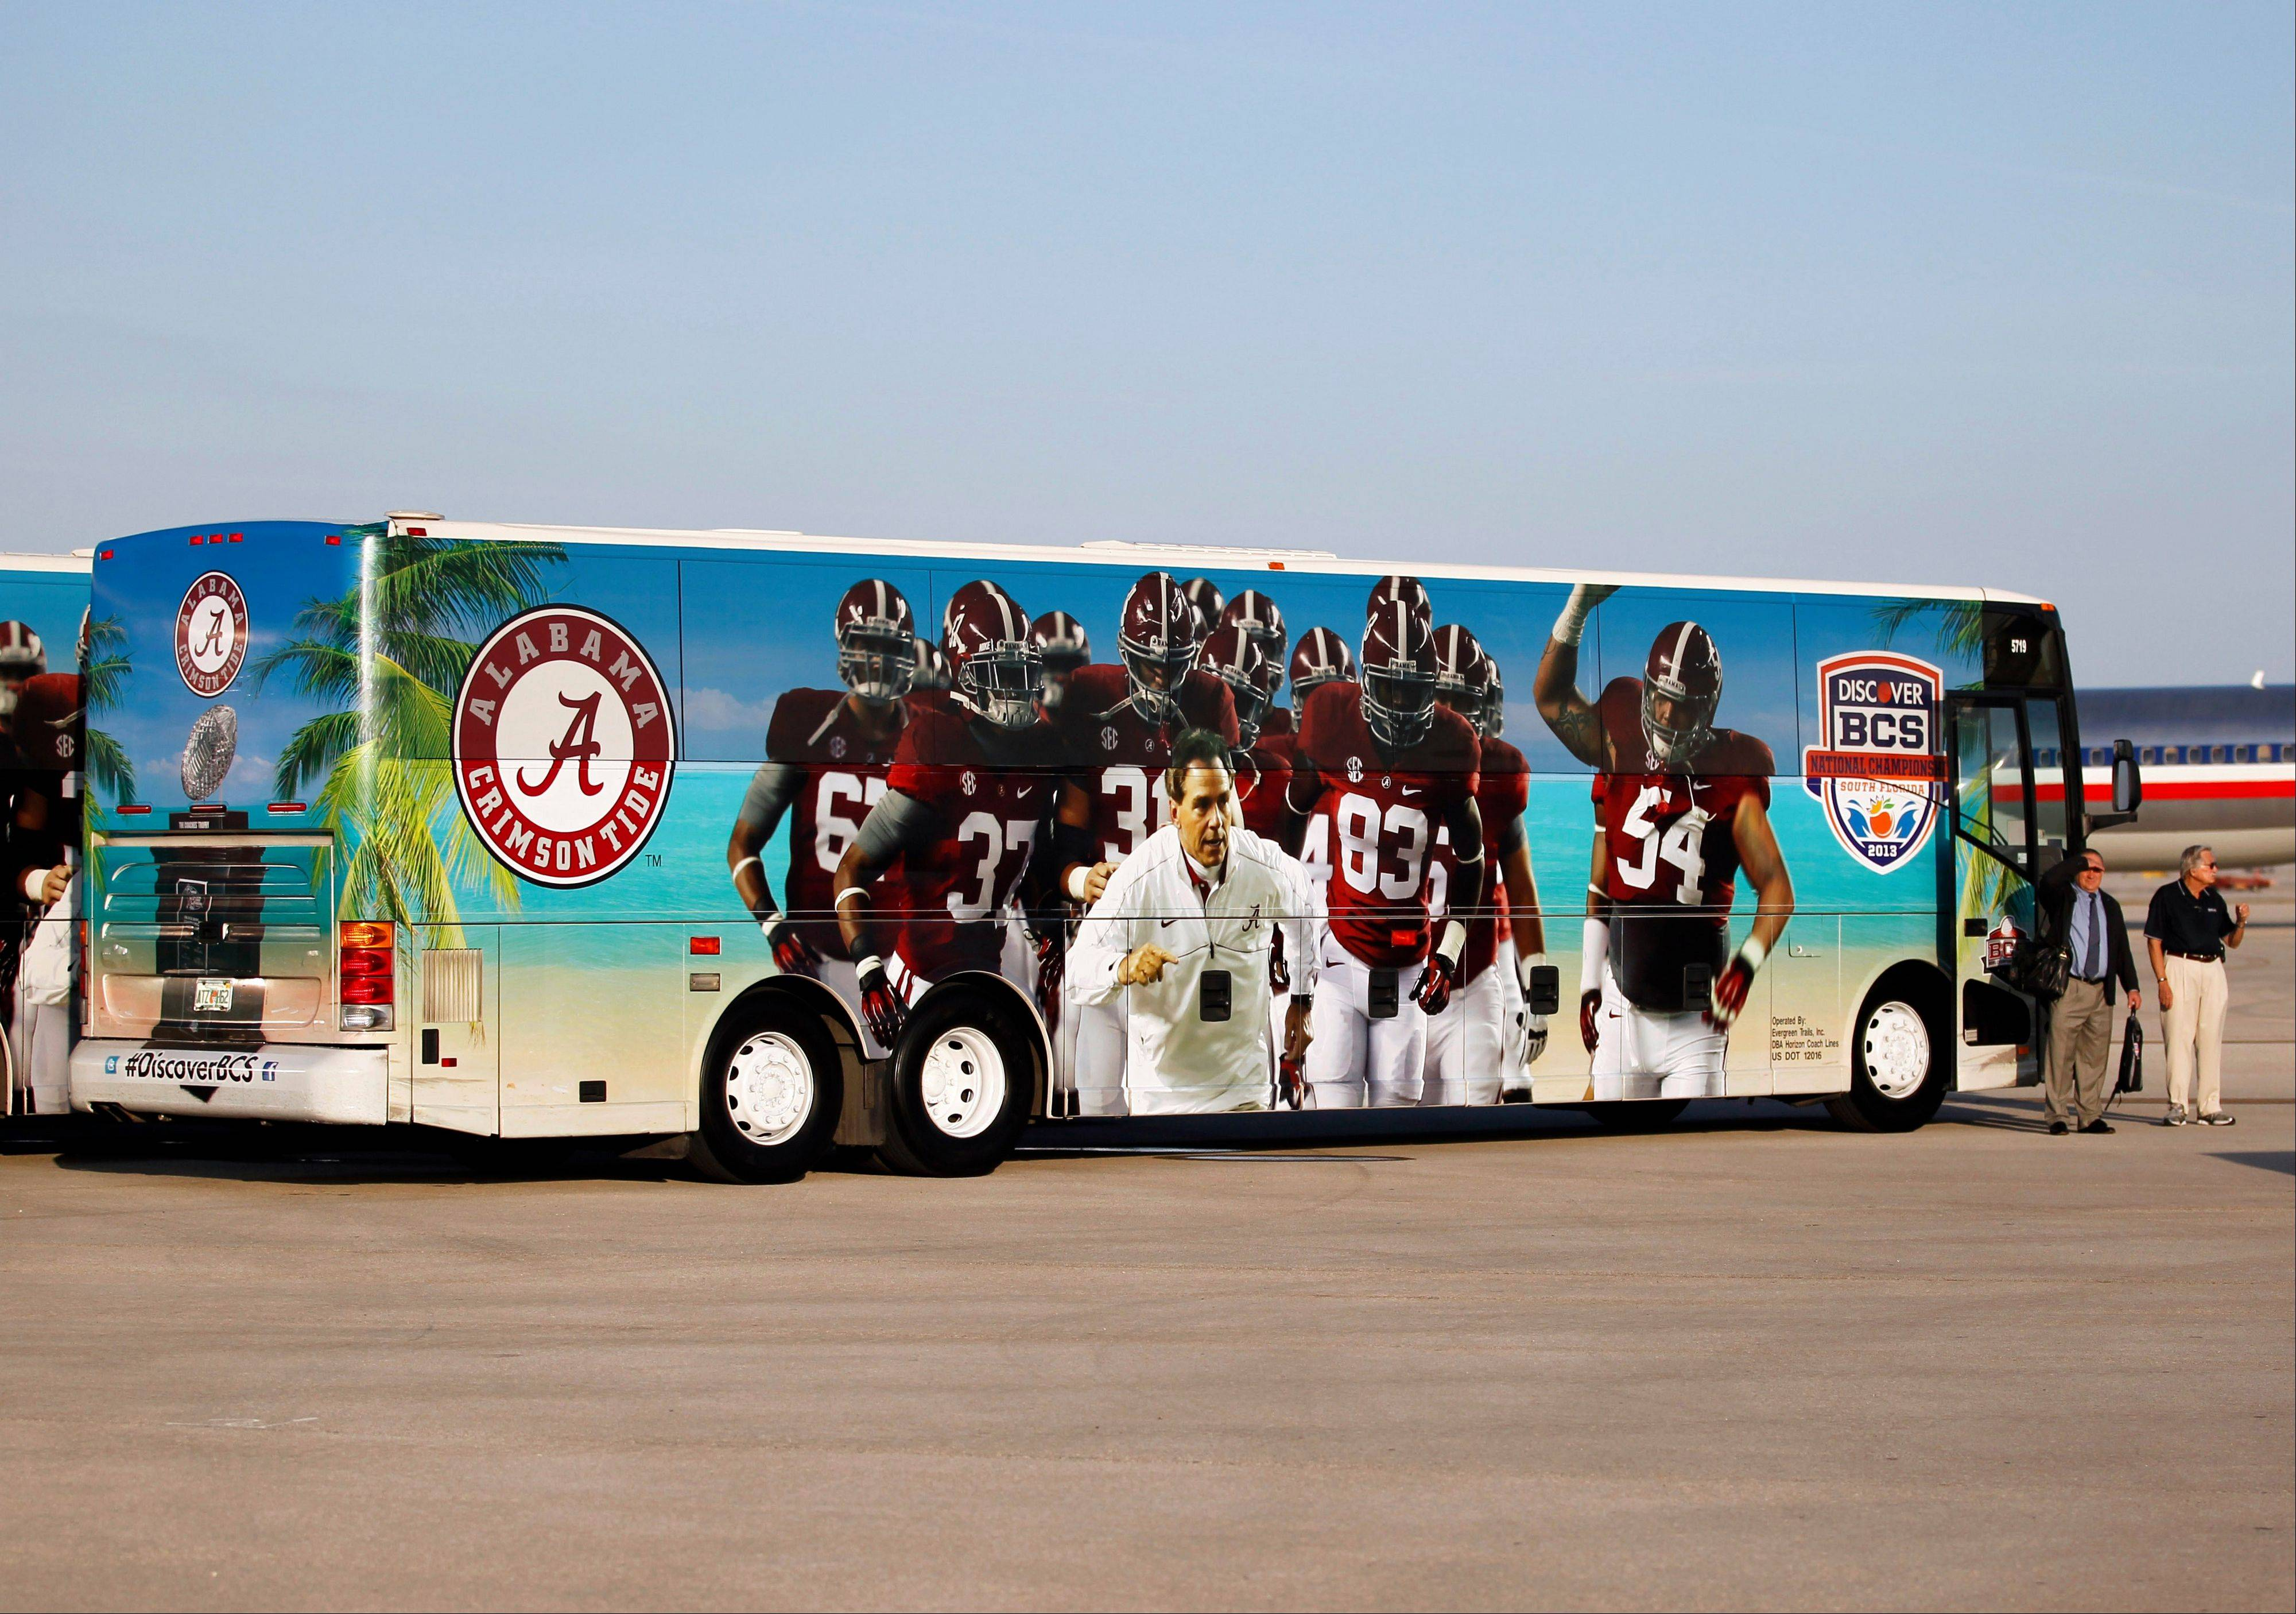 A bus with the image of head coach Nick Saban and players on the side prepares to take the team from Miami International Airport.